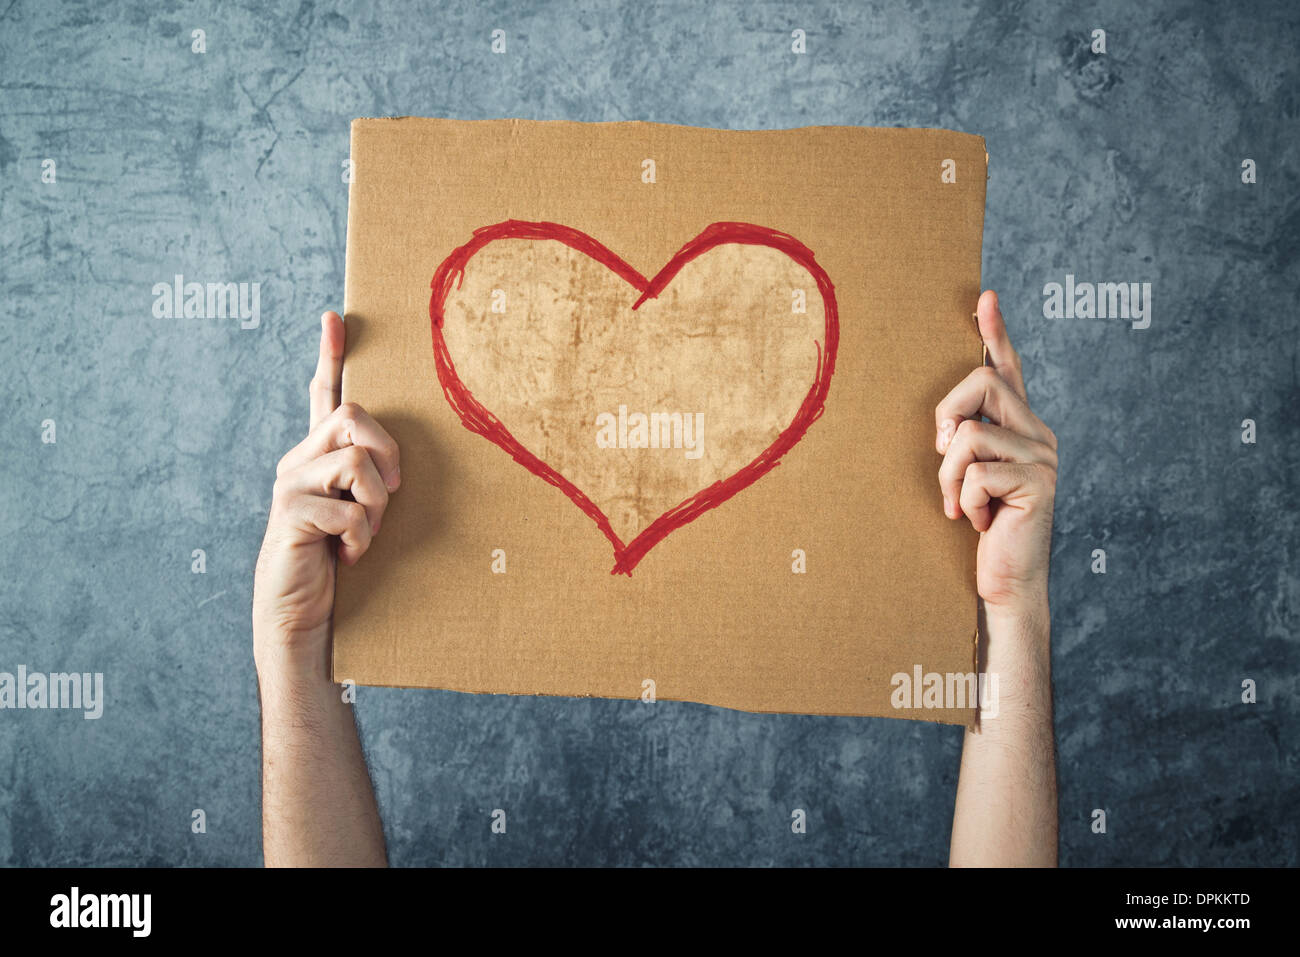 Man holding cardboard paper with heart shape drawing as Valentines day conceptual image. - Stock Image